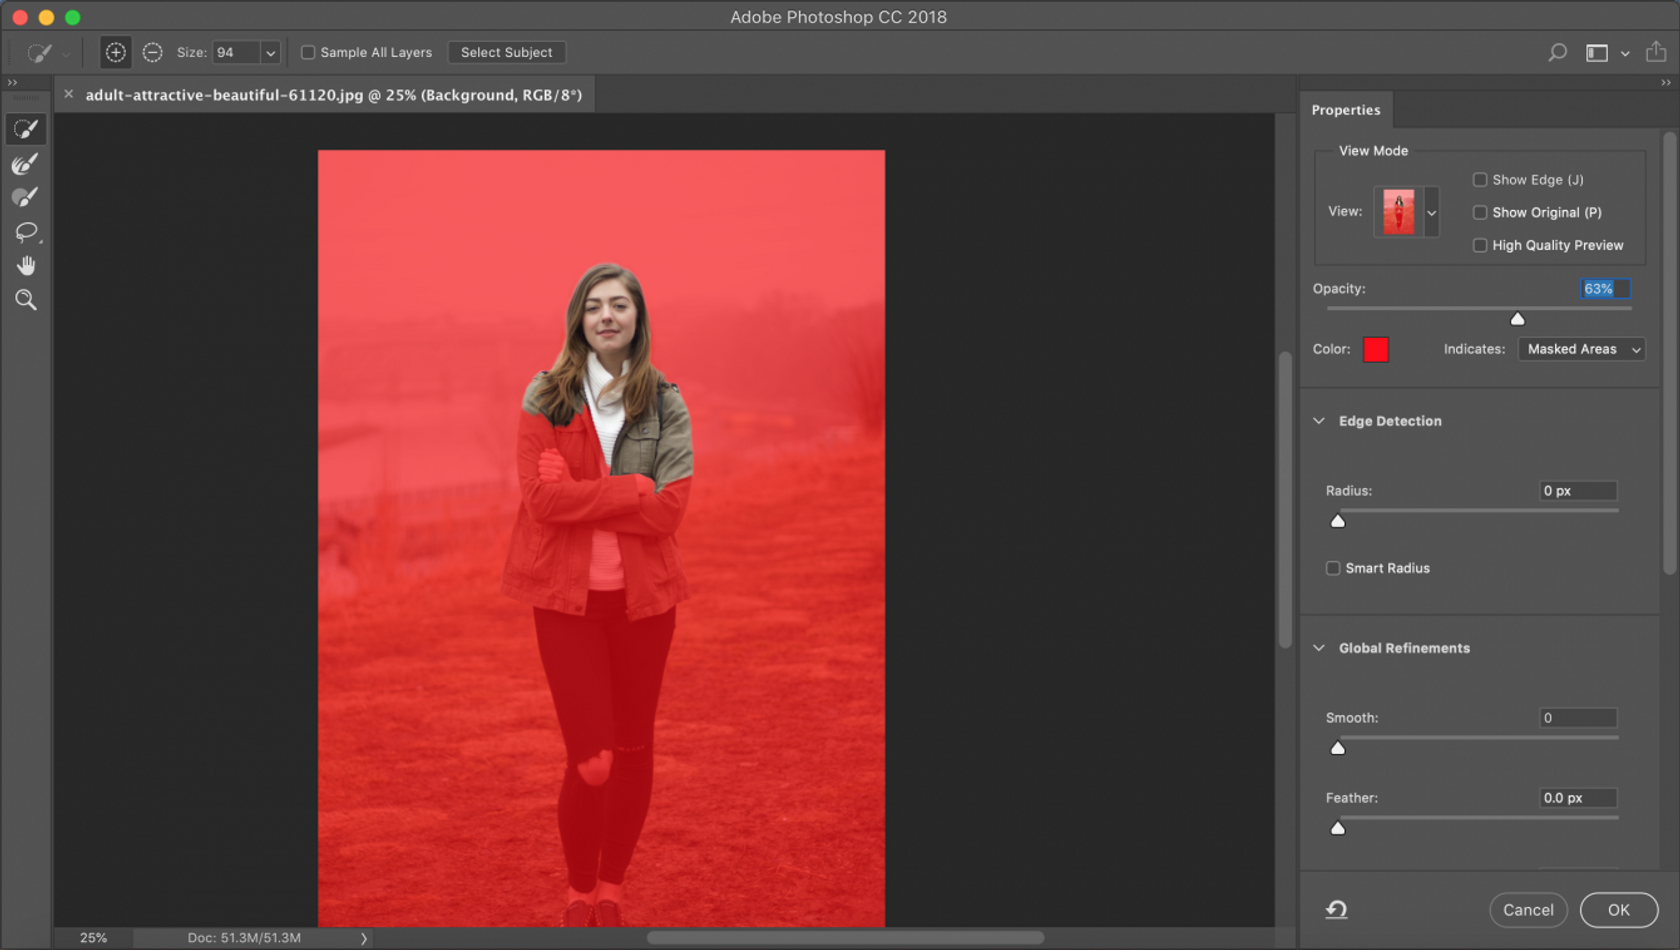 How to Smooth Edges in Photoshop: Photoshop Feather and Other Tools Image5